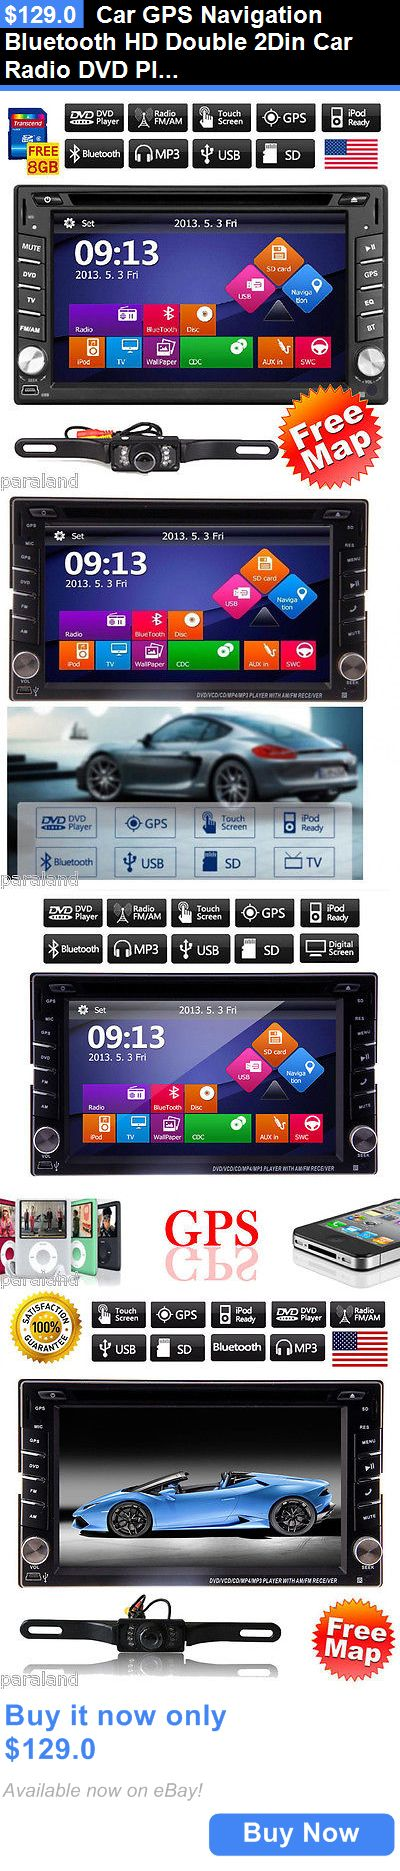 Vehicle Electronics And GPS: Car Gps Navigation Bluetooth Hd Double 2Din Car Radio Dvd Player Stereo With Map BUY IT NOW ONLY: $129.0